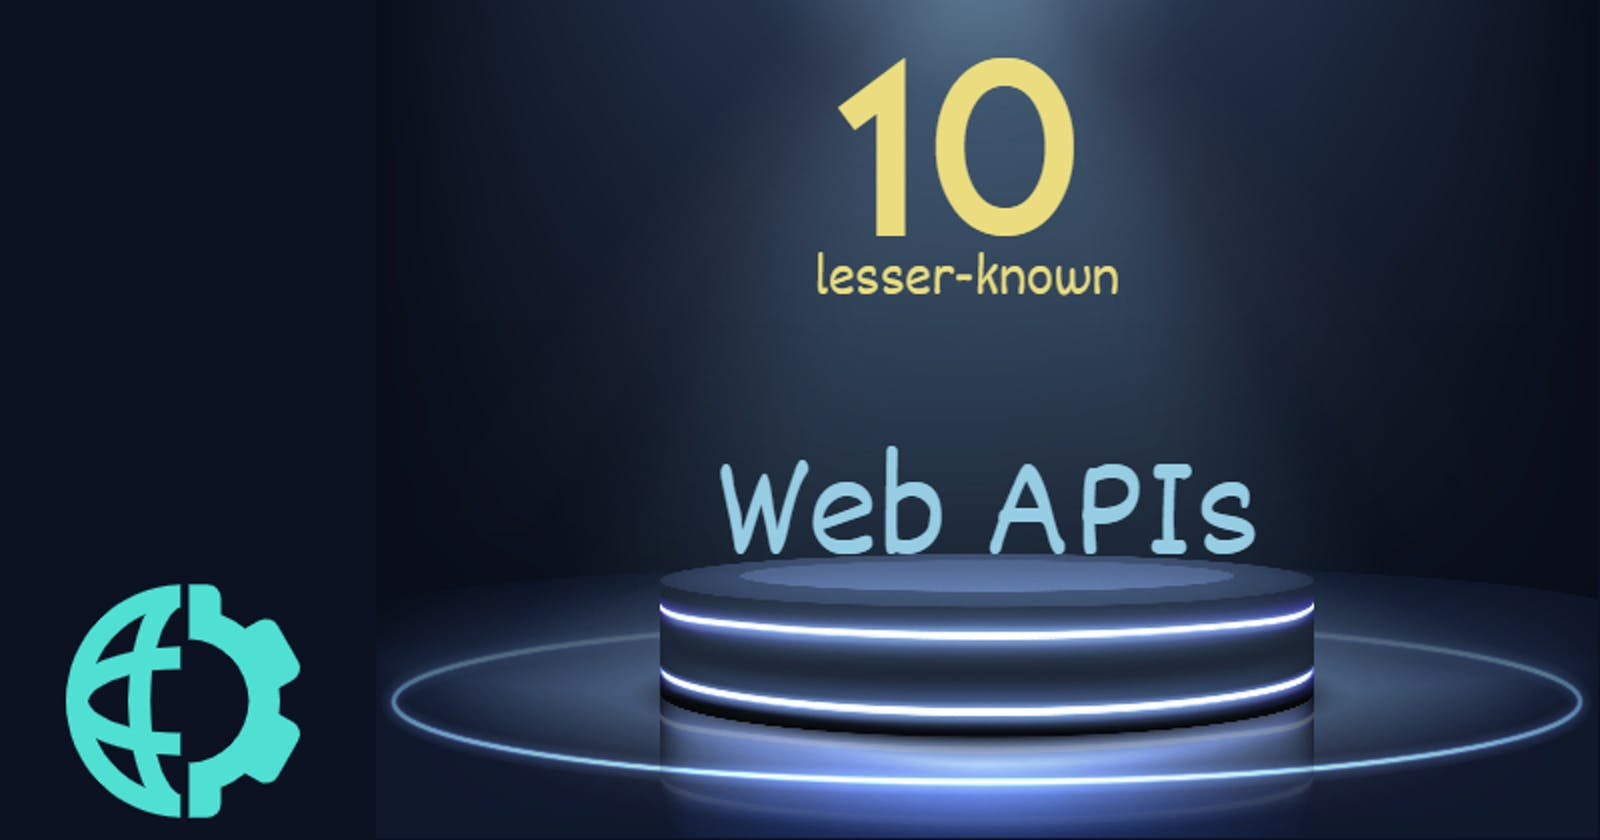 10 lesser-known Web APIs you may want to use